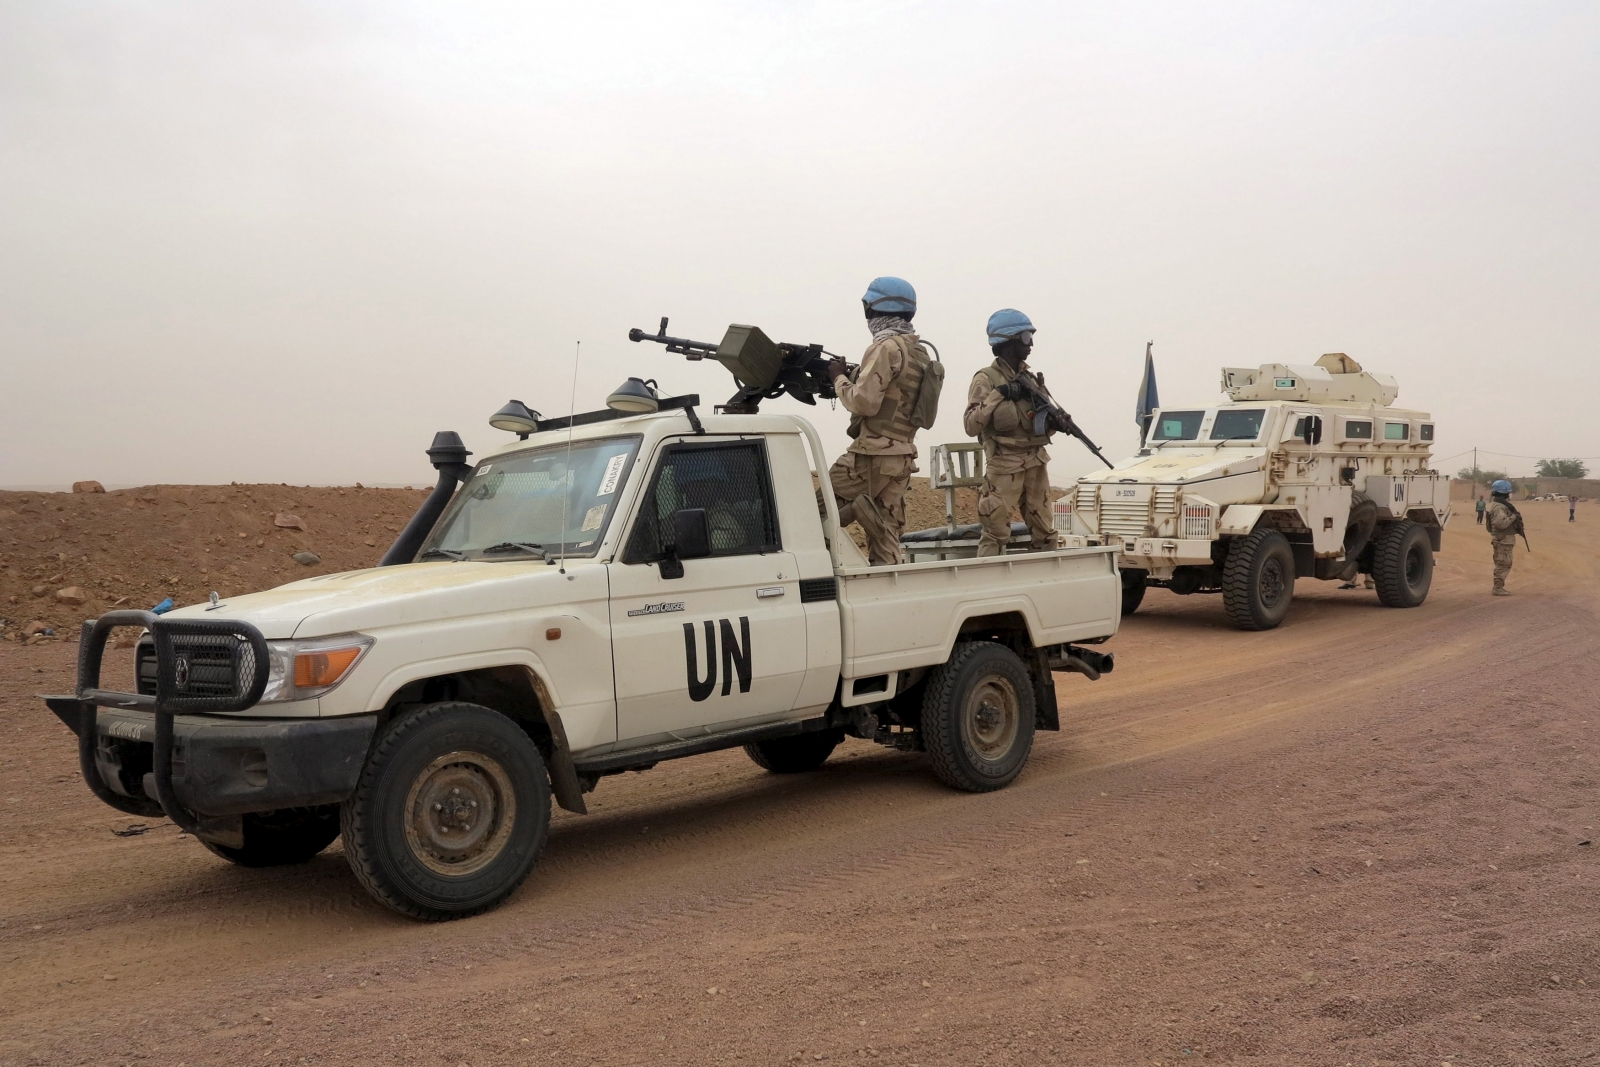 UN peacekeepers patrol in Kidal